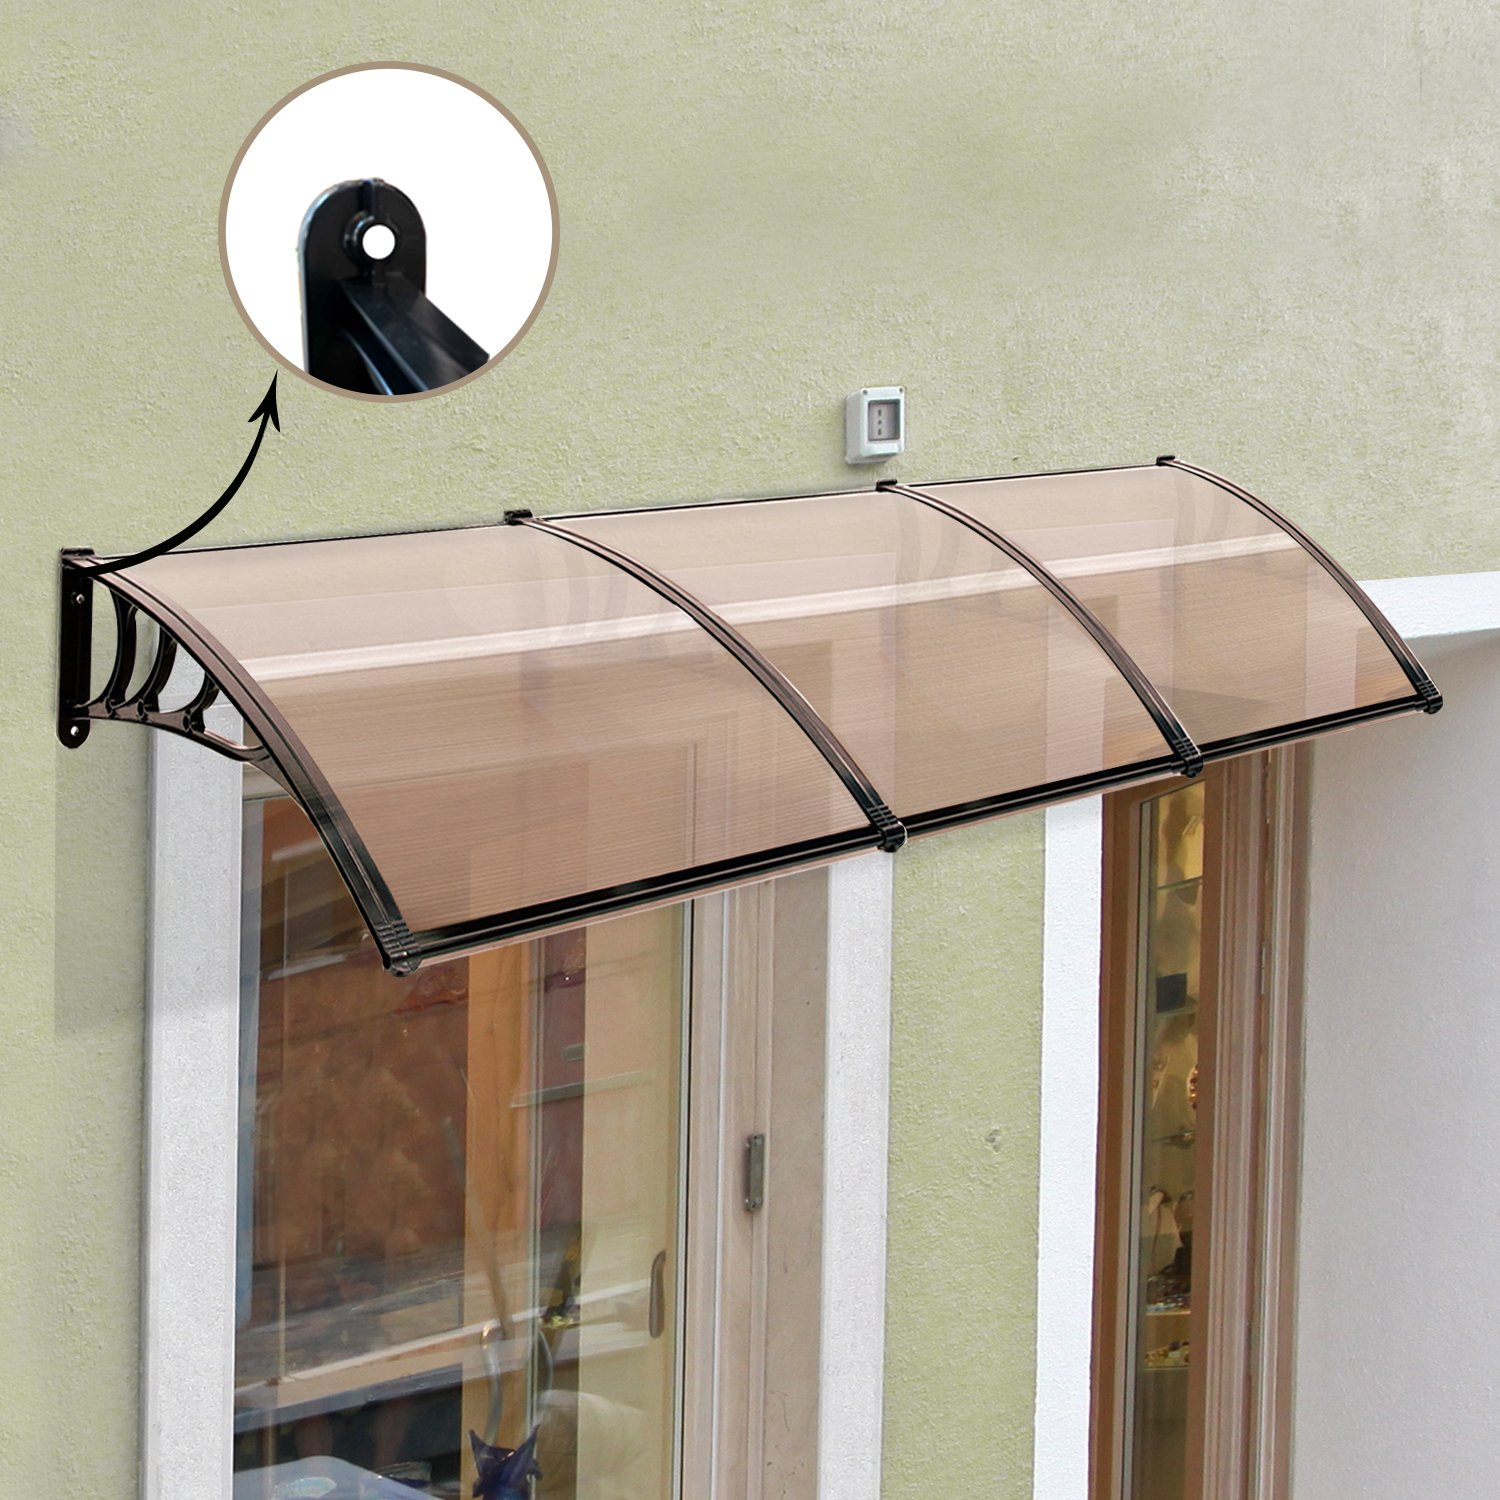 Canopy from polycarbonate do it yourself. Step by step installation instructions. Cost of materials 95